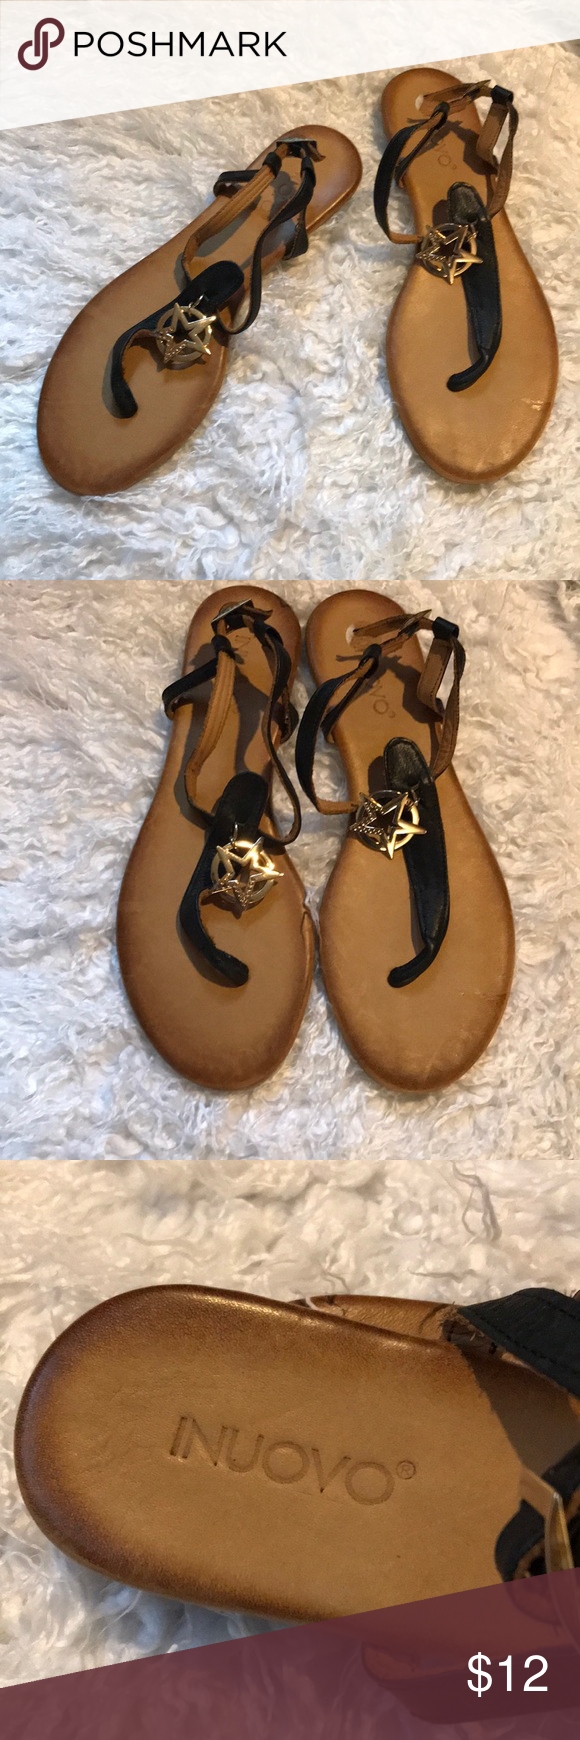 huge discount 9c9e3 183d7 Anthropologie Inuovo sandals. NWOT. Size 39/8 Very cute ...